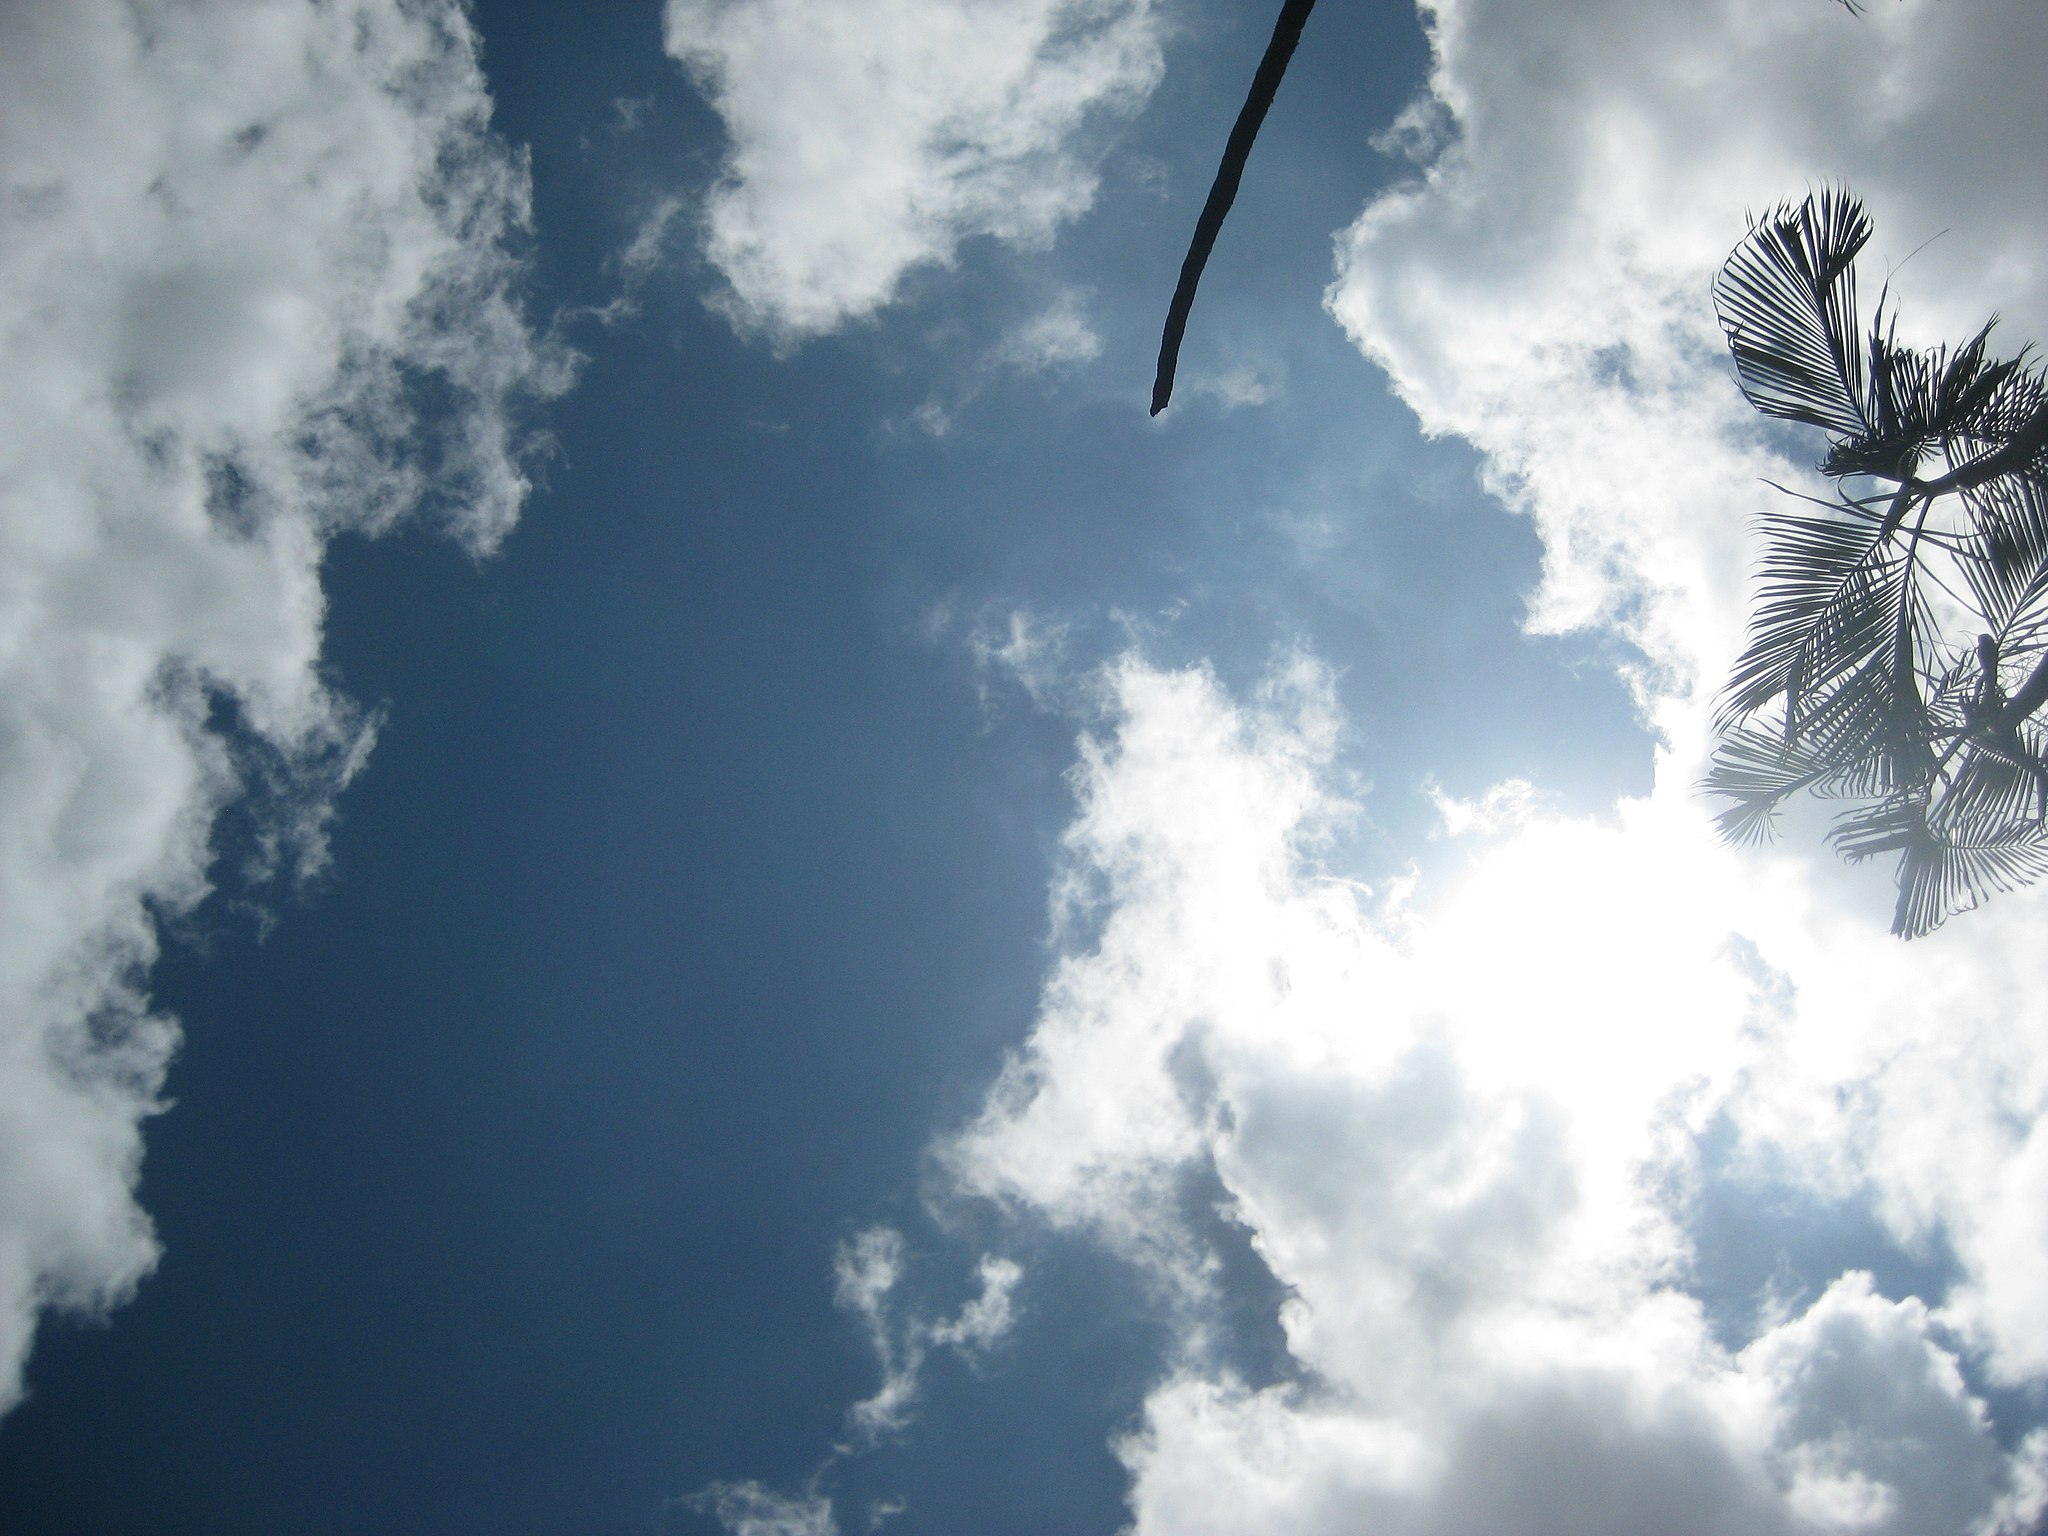 Clear Sky in Mymensingh, August, 2014     by Ibrahim Husain Meraj (Creative Commons)